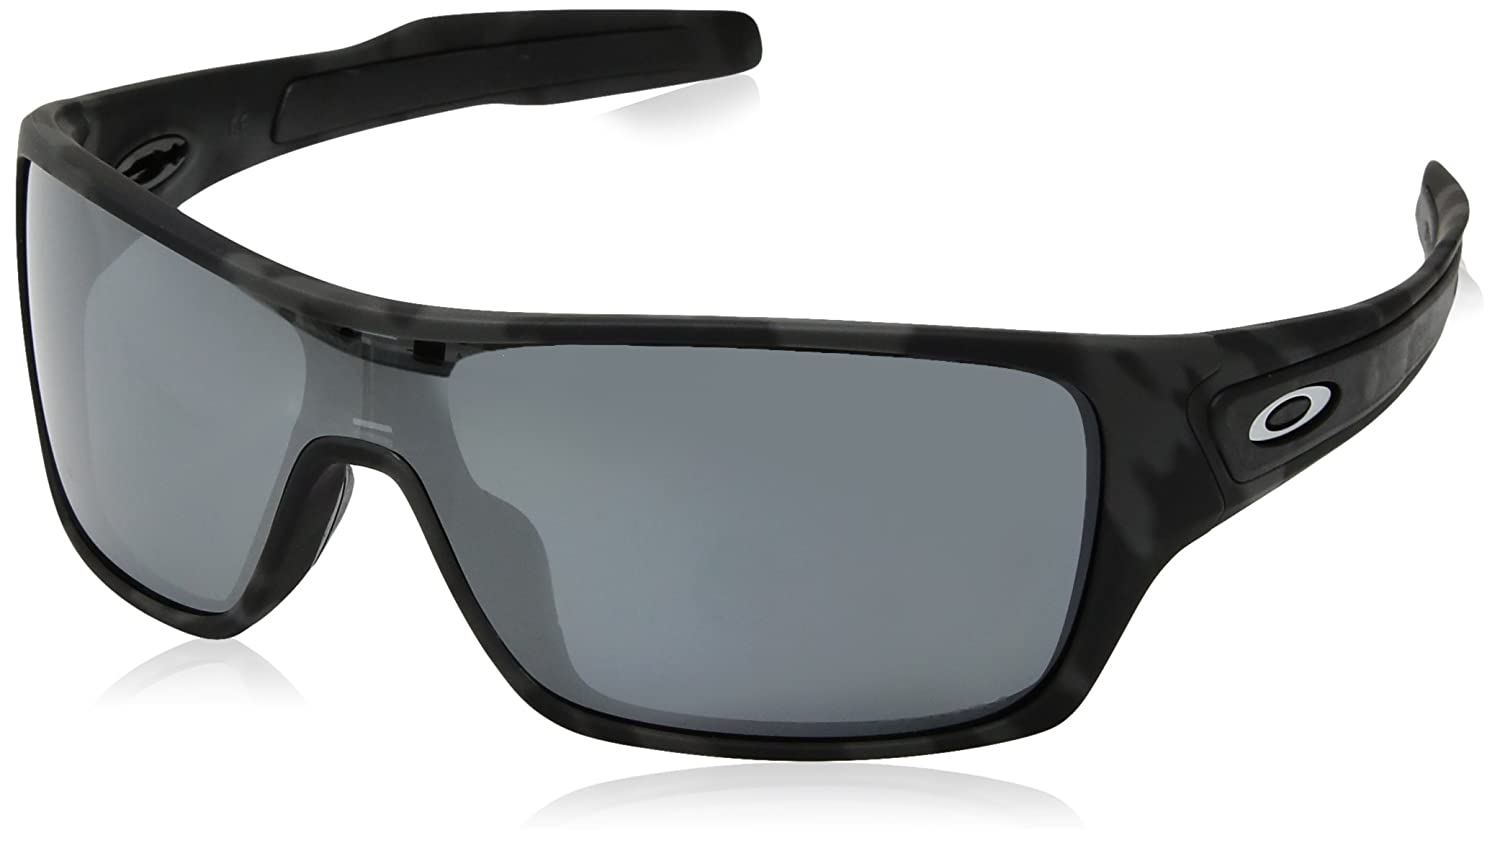 cb6a537c419 Amazon.com  Oakley Men s Turbine Rotor Polarized Sunglasses